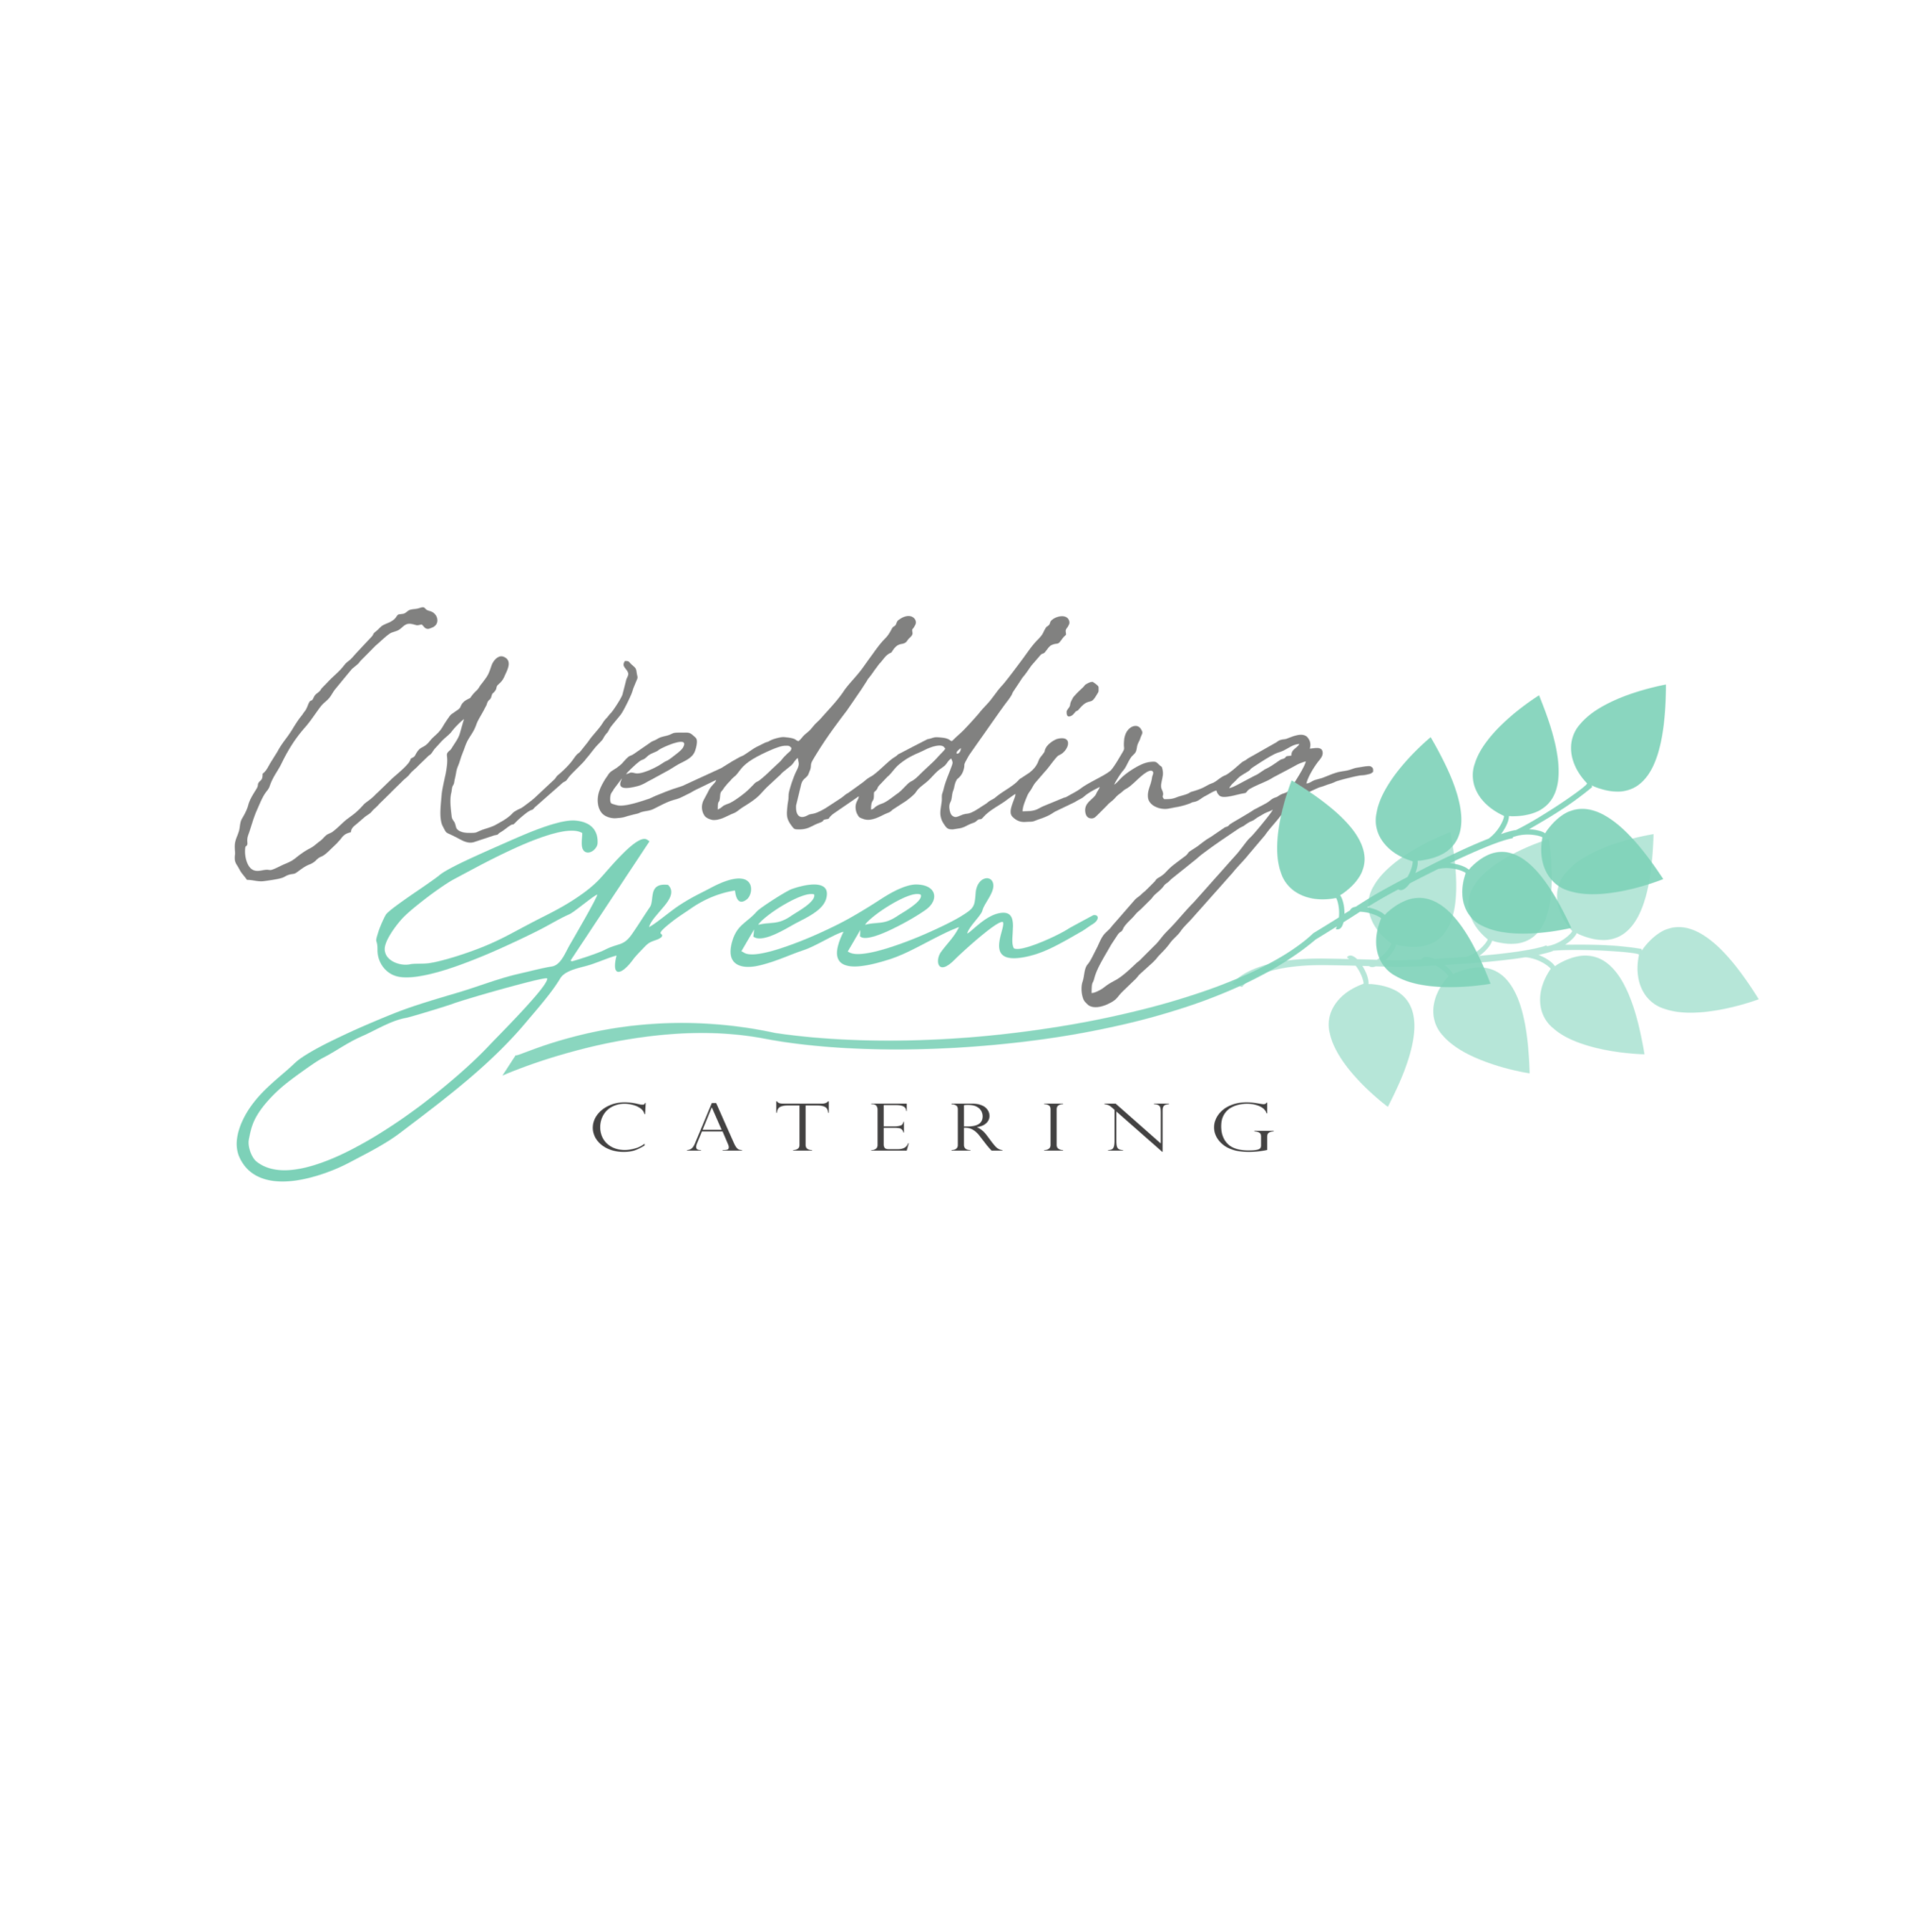 wedding green catering para bodas